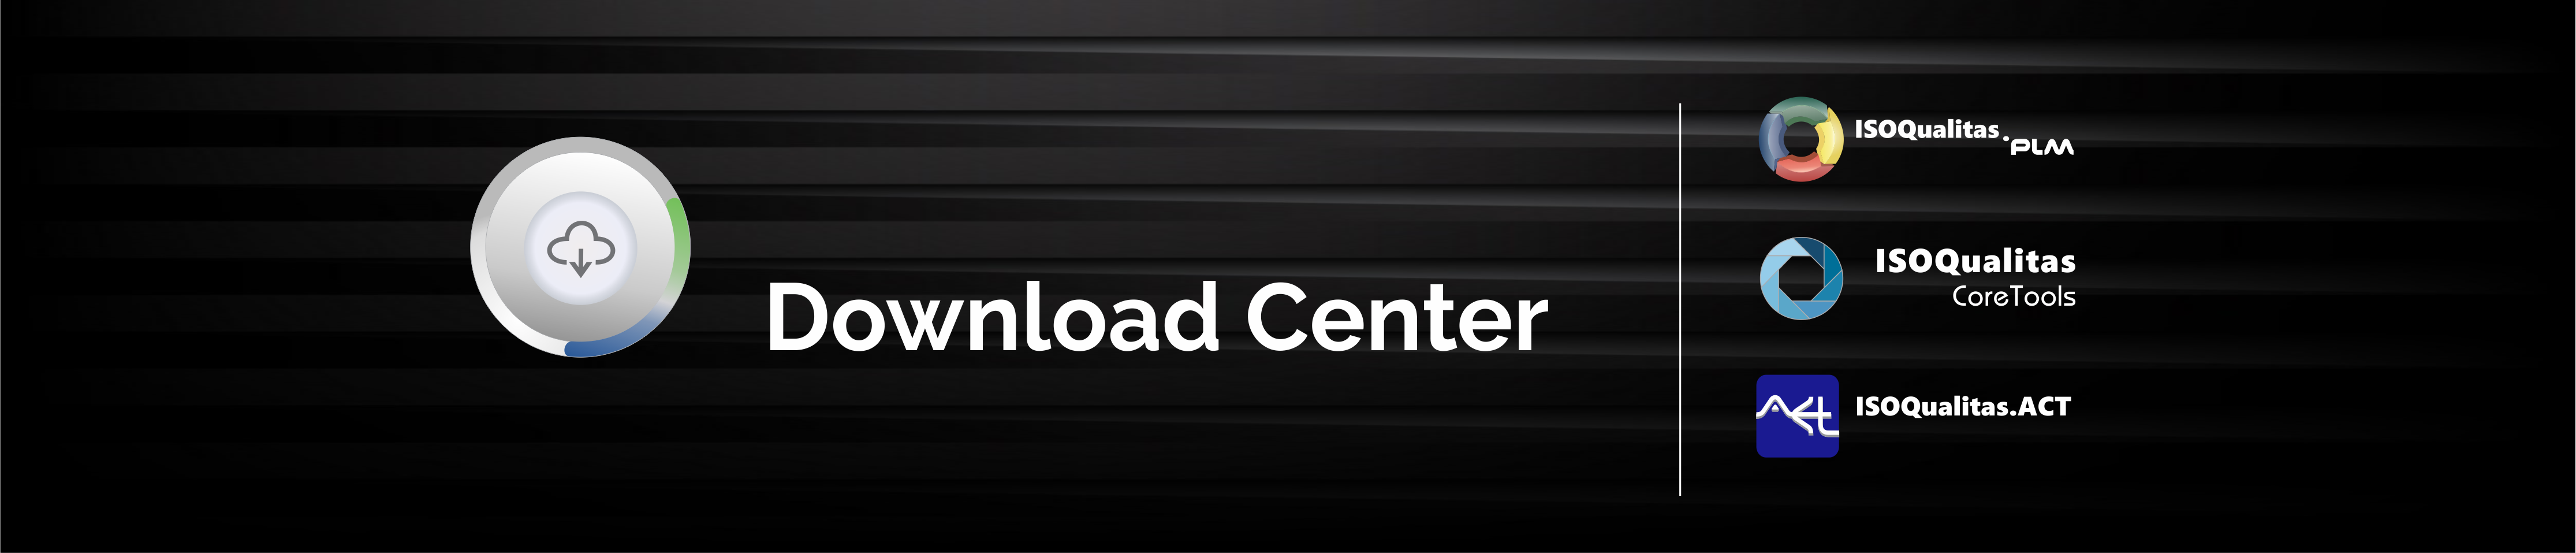 DownloadCenter1